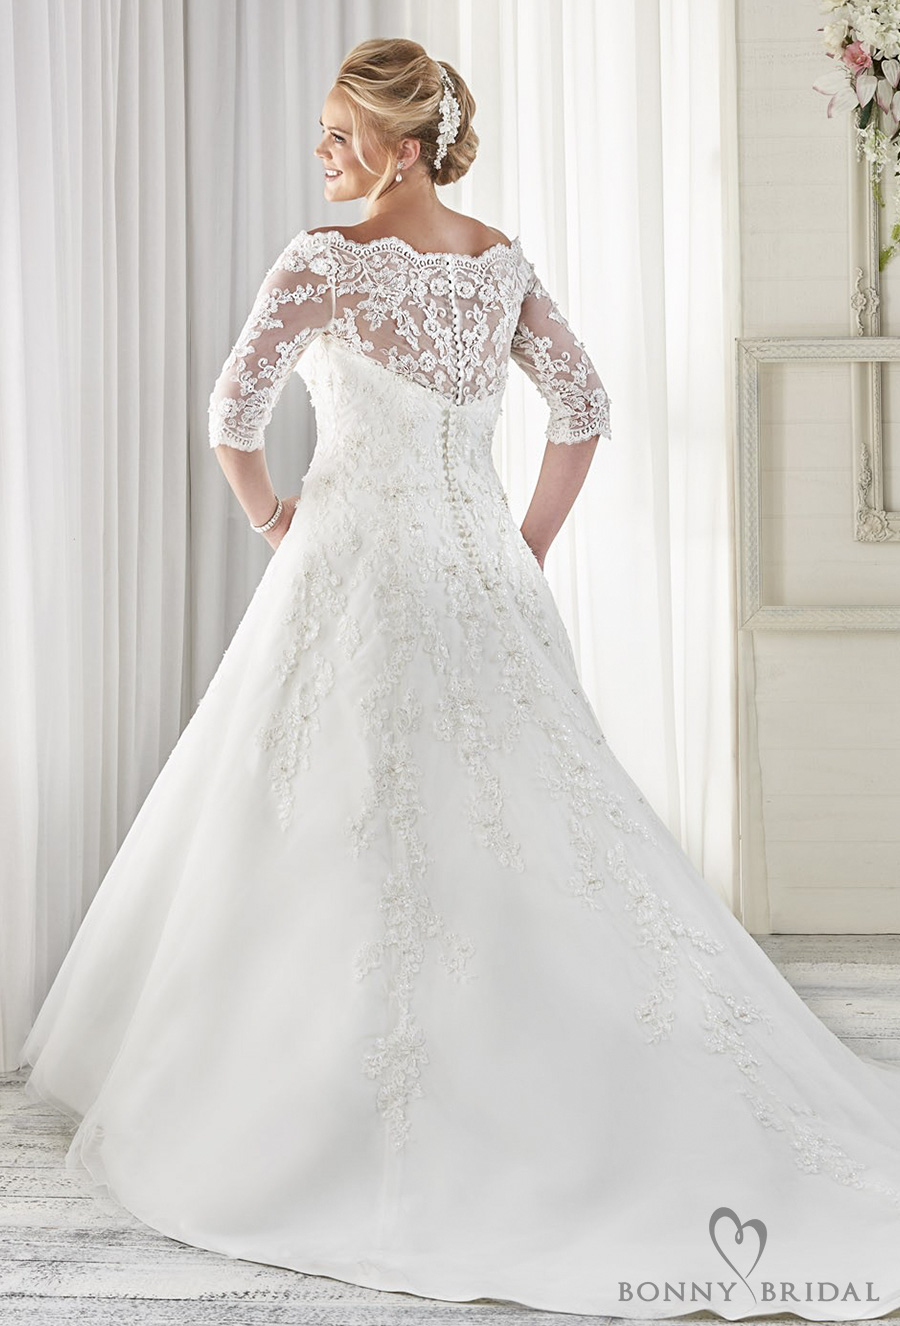 Bonny bridal wedding dresses unforgettable styles for for Lace wedding dresses plus size